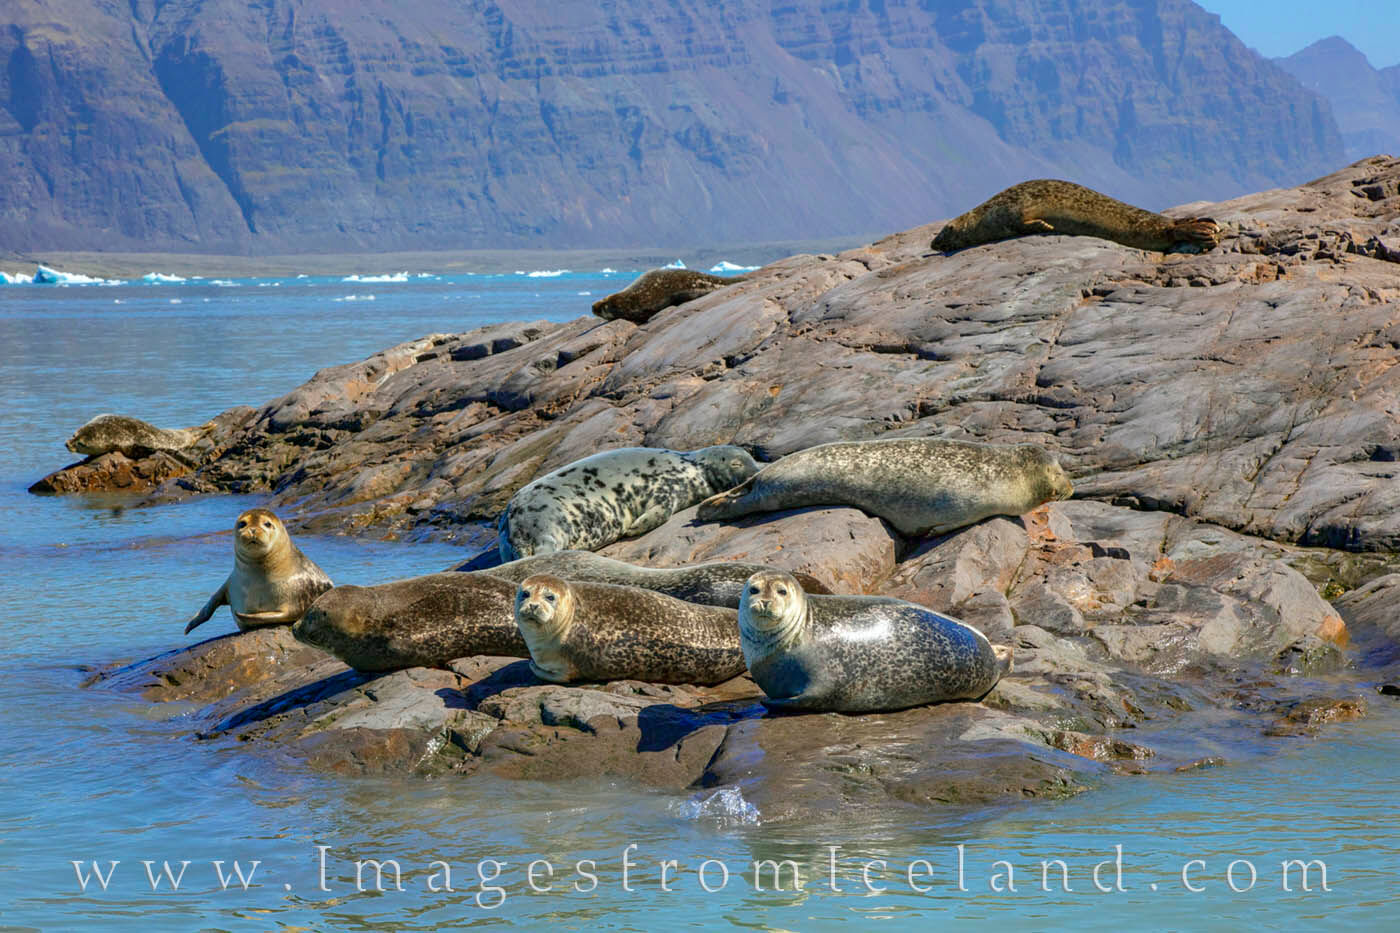 Seals warm themselves on rocks in Jökulsárlón Bay in south Iceland. These seals live in this glacier bay formed by the...